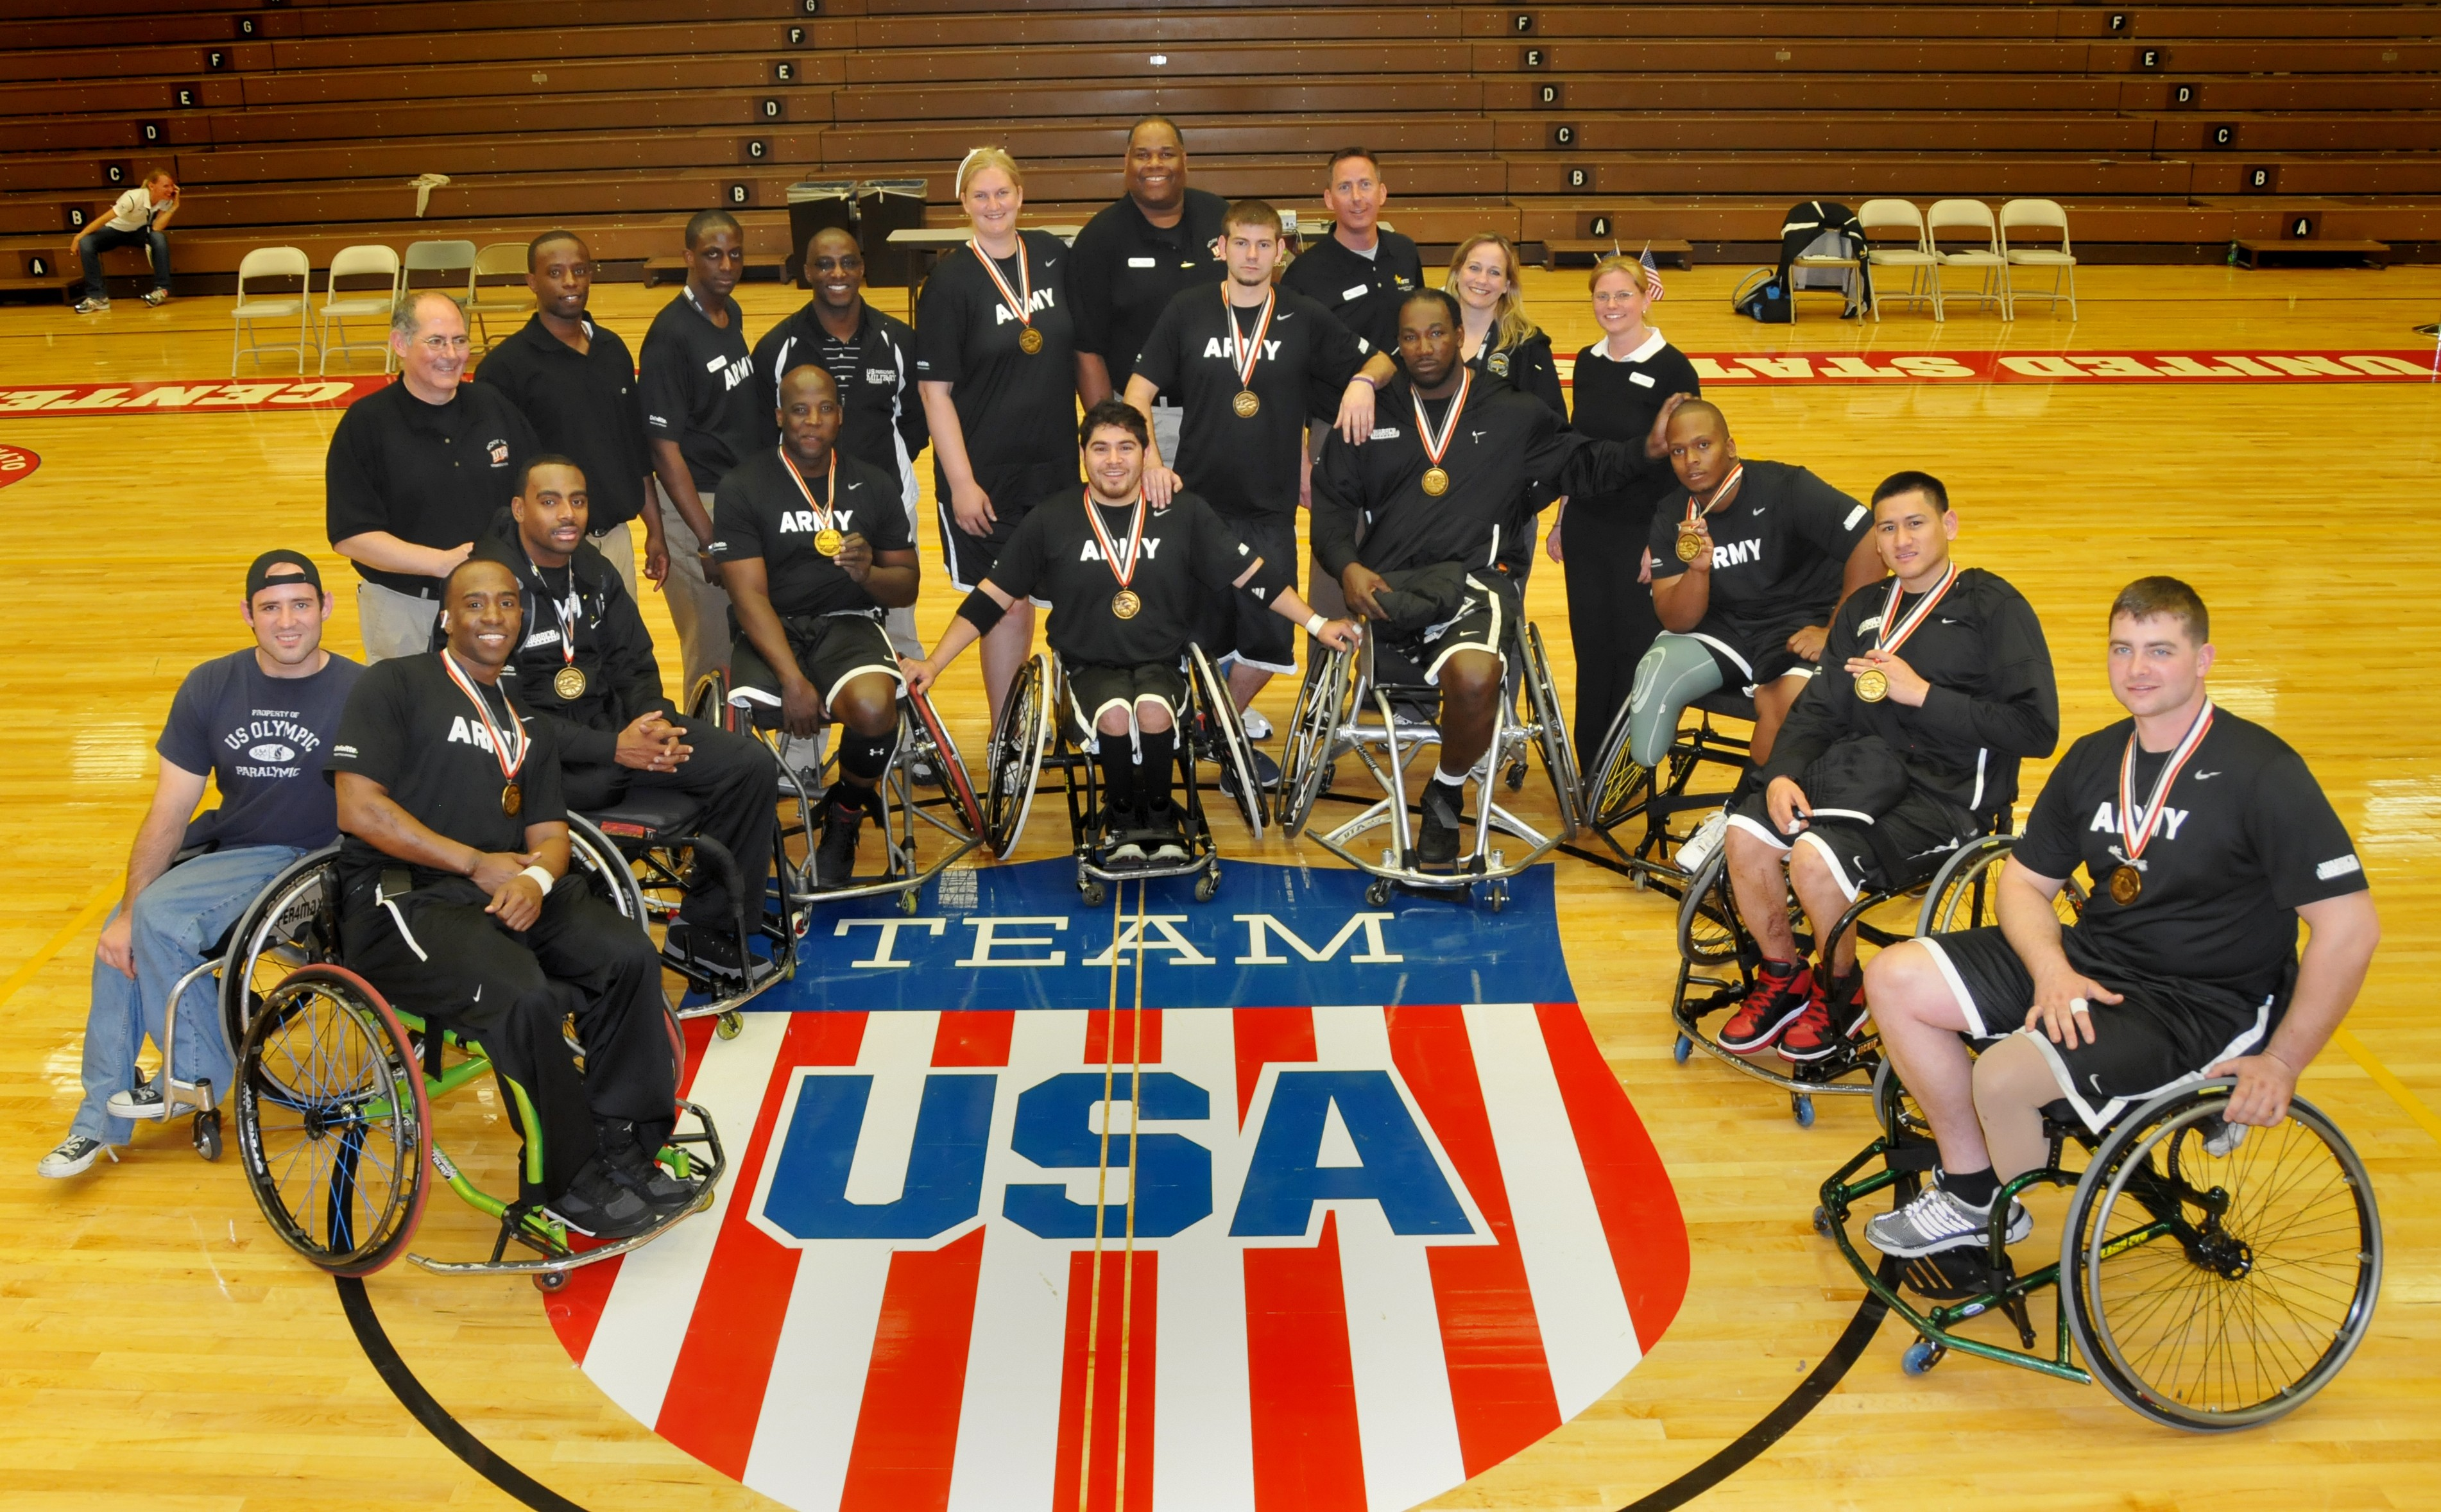 wheelchair volleyball white high back office chair live feed 2012 warrior games championship seated